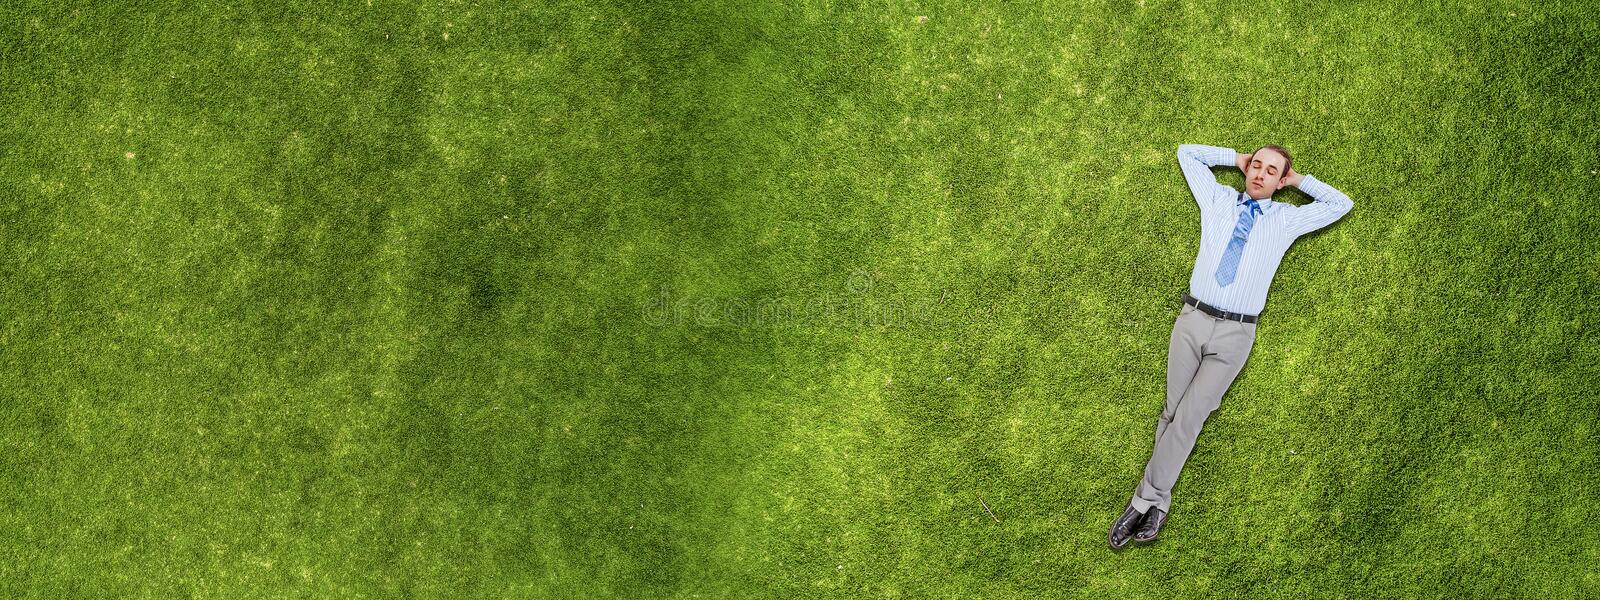 Relaxing businessman on grass royalty free stock photo